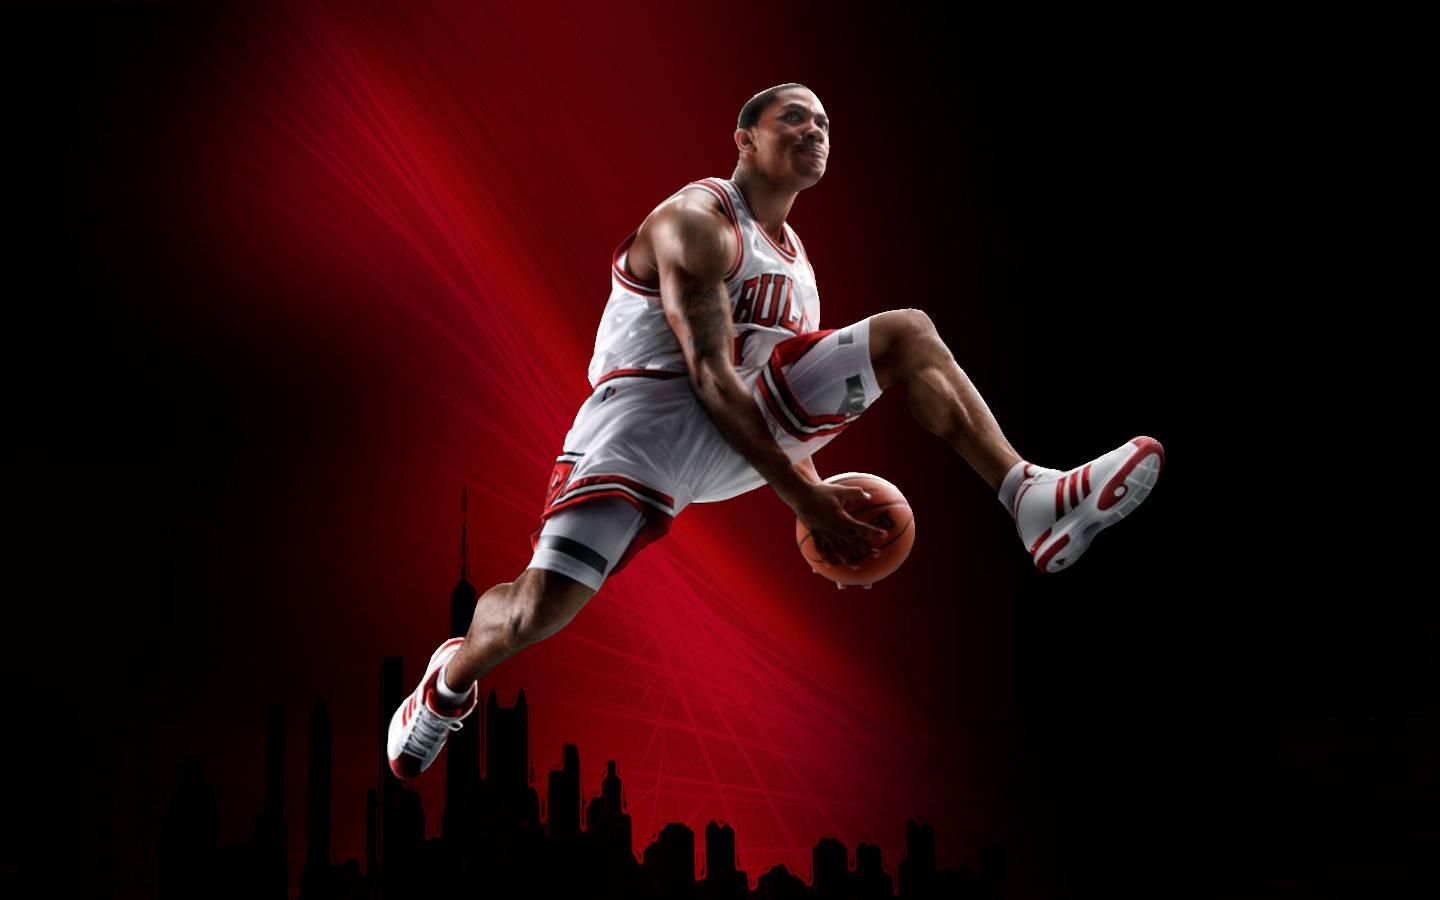 cool basketball hd widescreen 24 1080p 1440x900